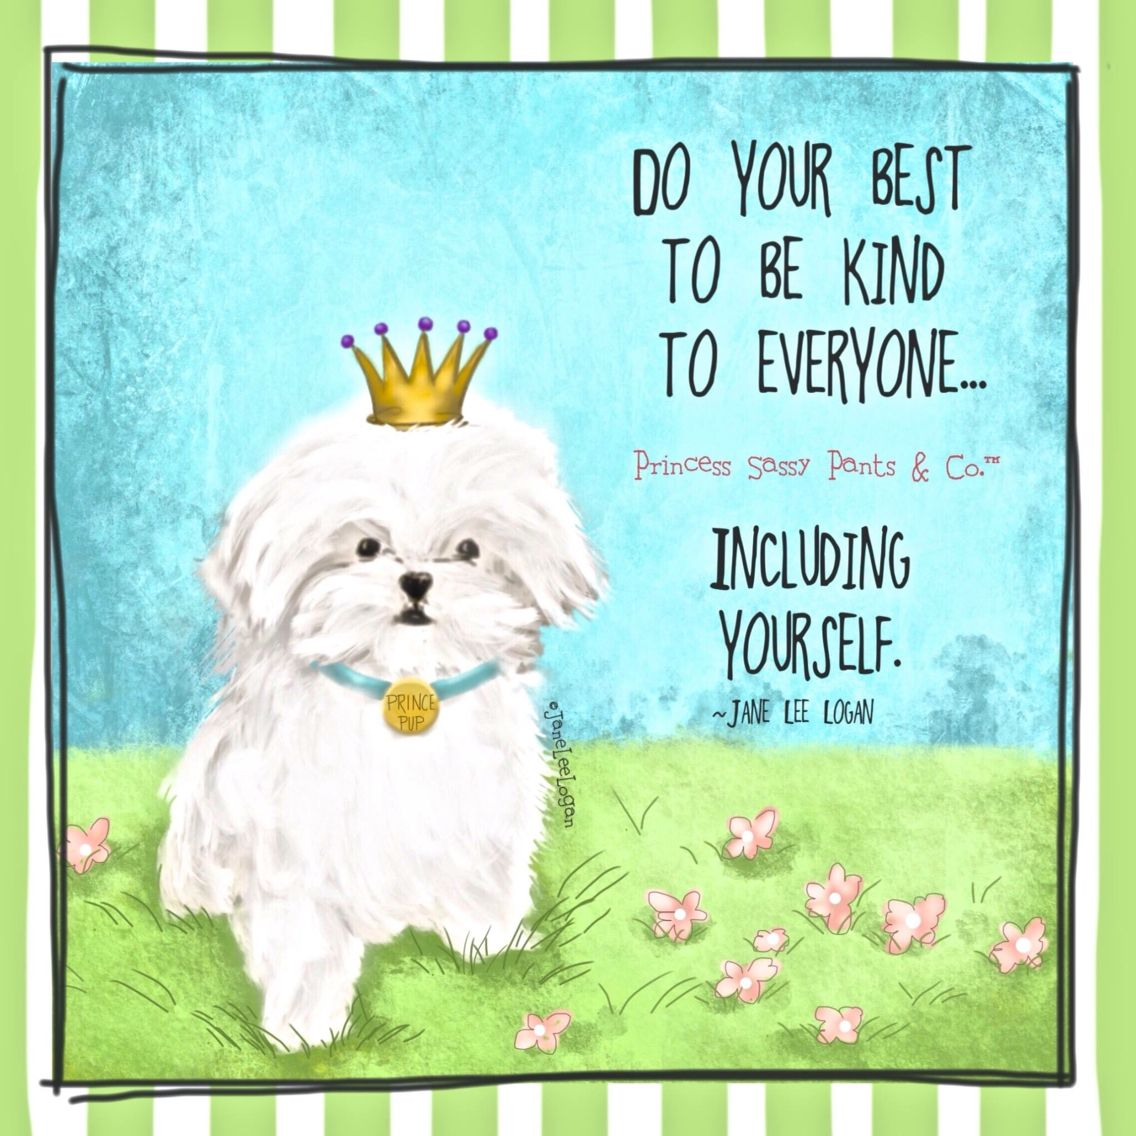 Be Kind image by Dawn Saner Sassy pants, Sassy pants